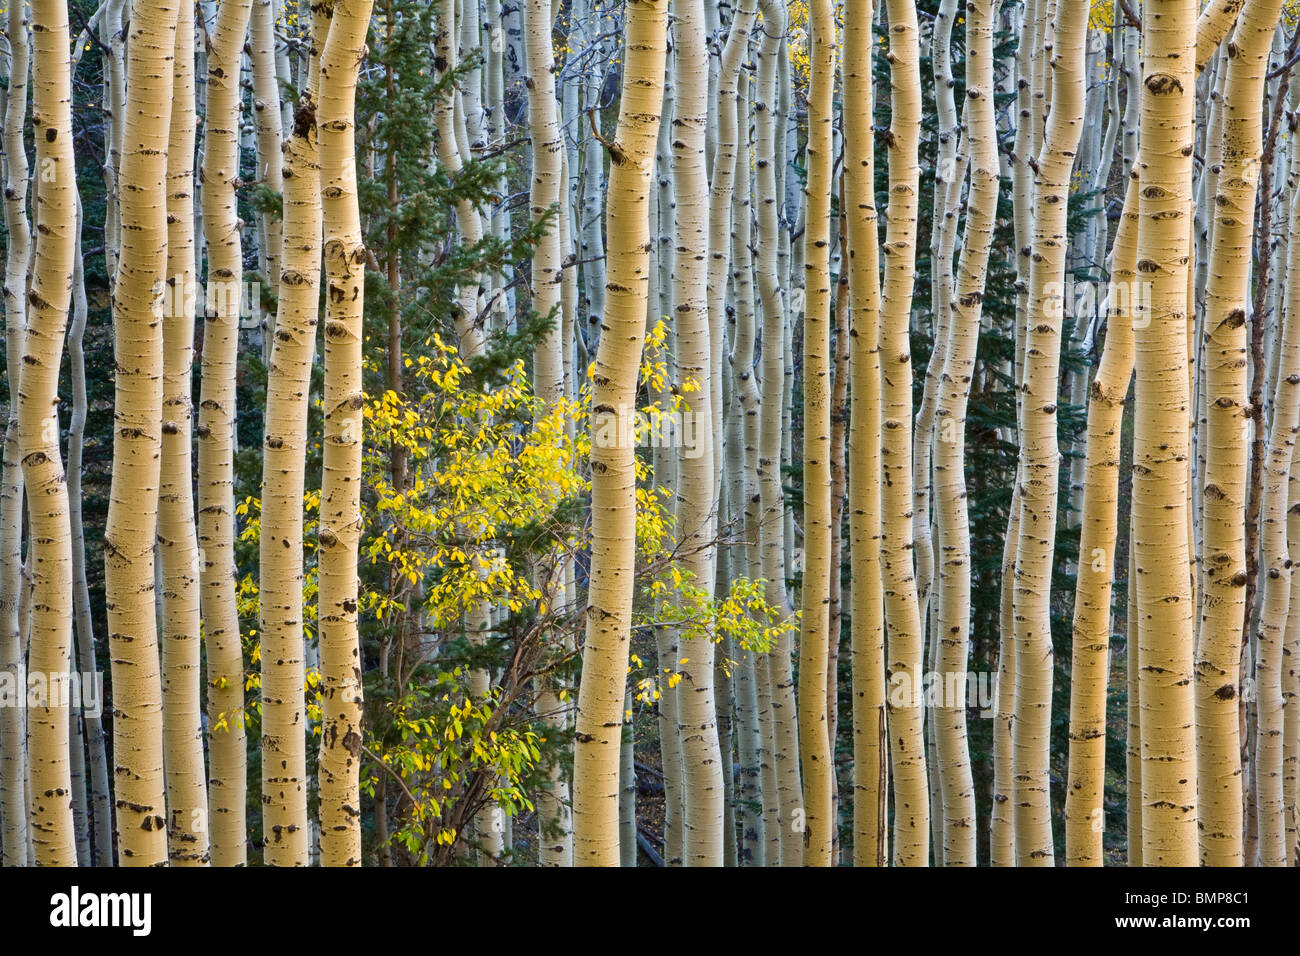 Grove of autumn aspen trees with yellow chokecherry tree on  slopes of San Francisco Peaks, Coconino National Forest, - Stock Image